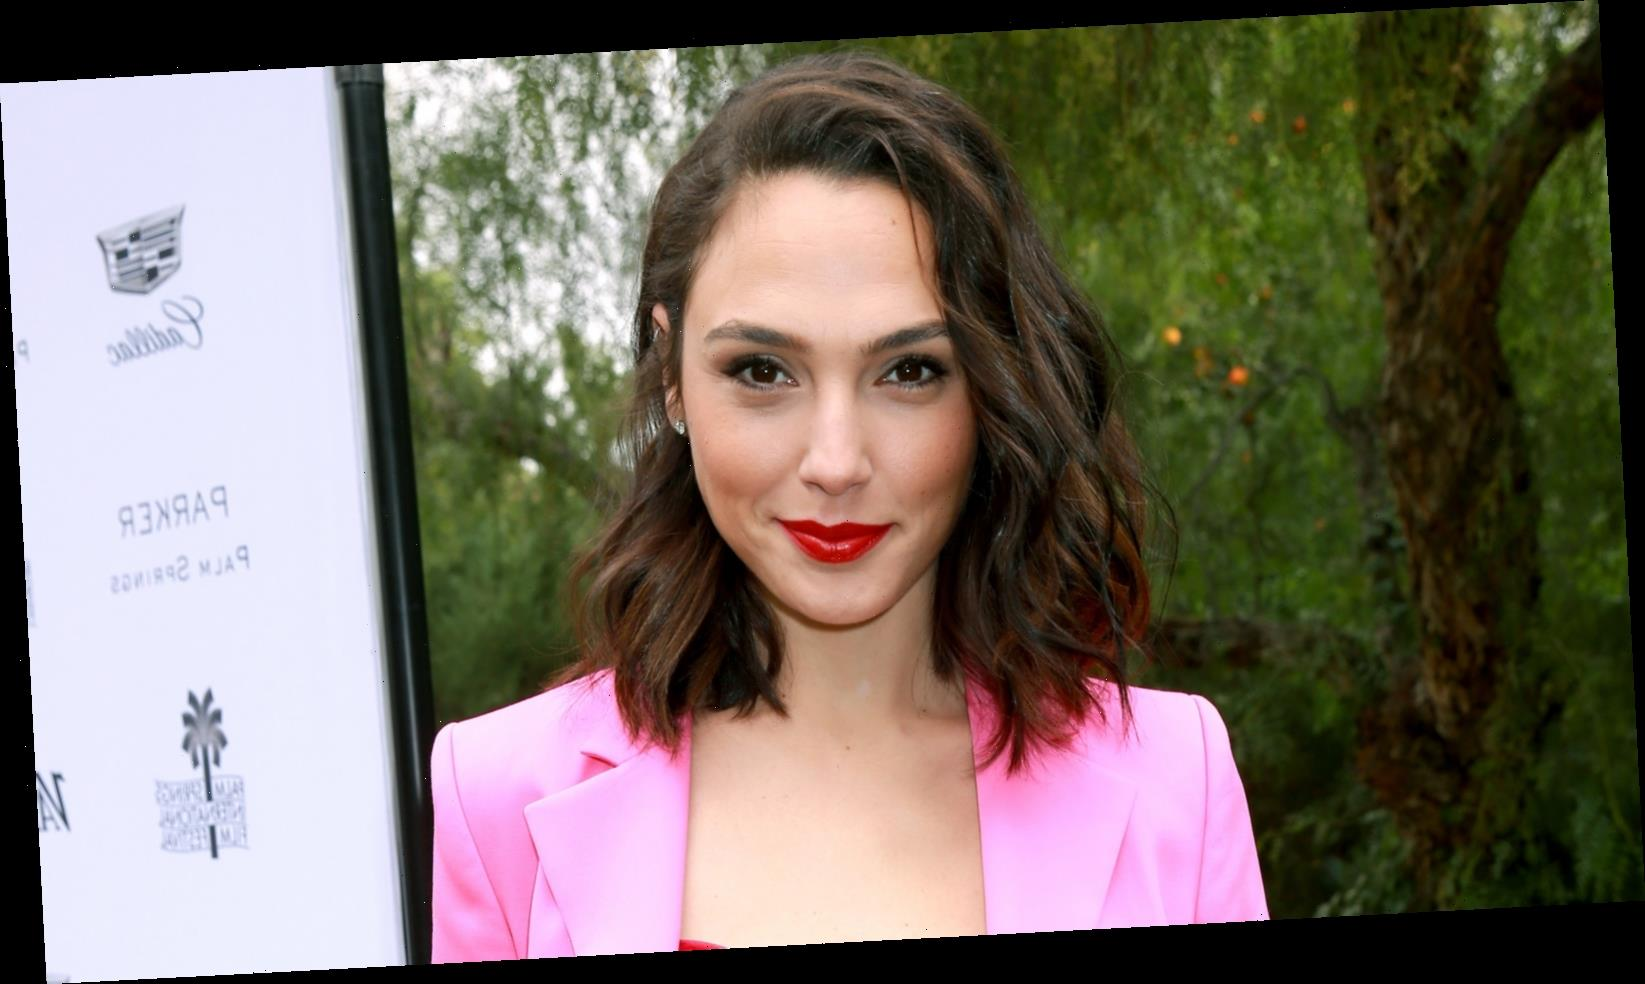 The transformation of Gal Gadot from 6 to 35 years old